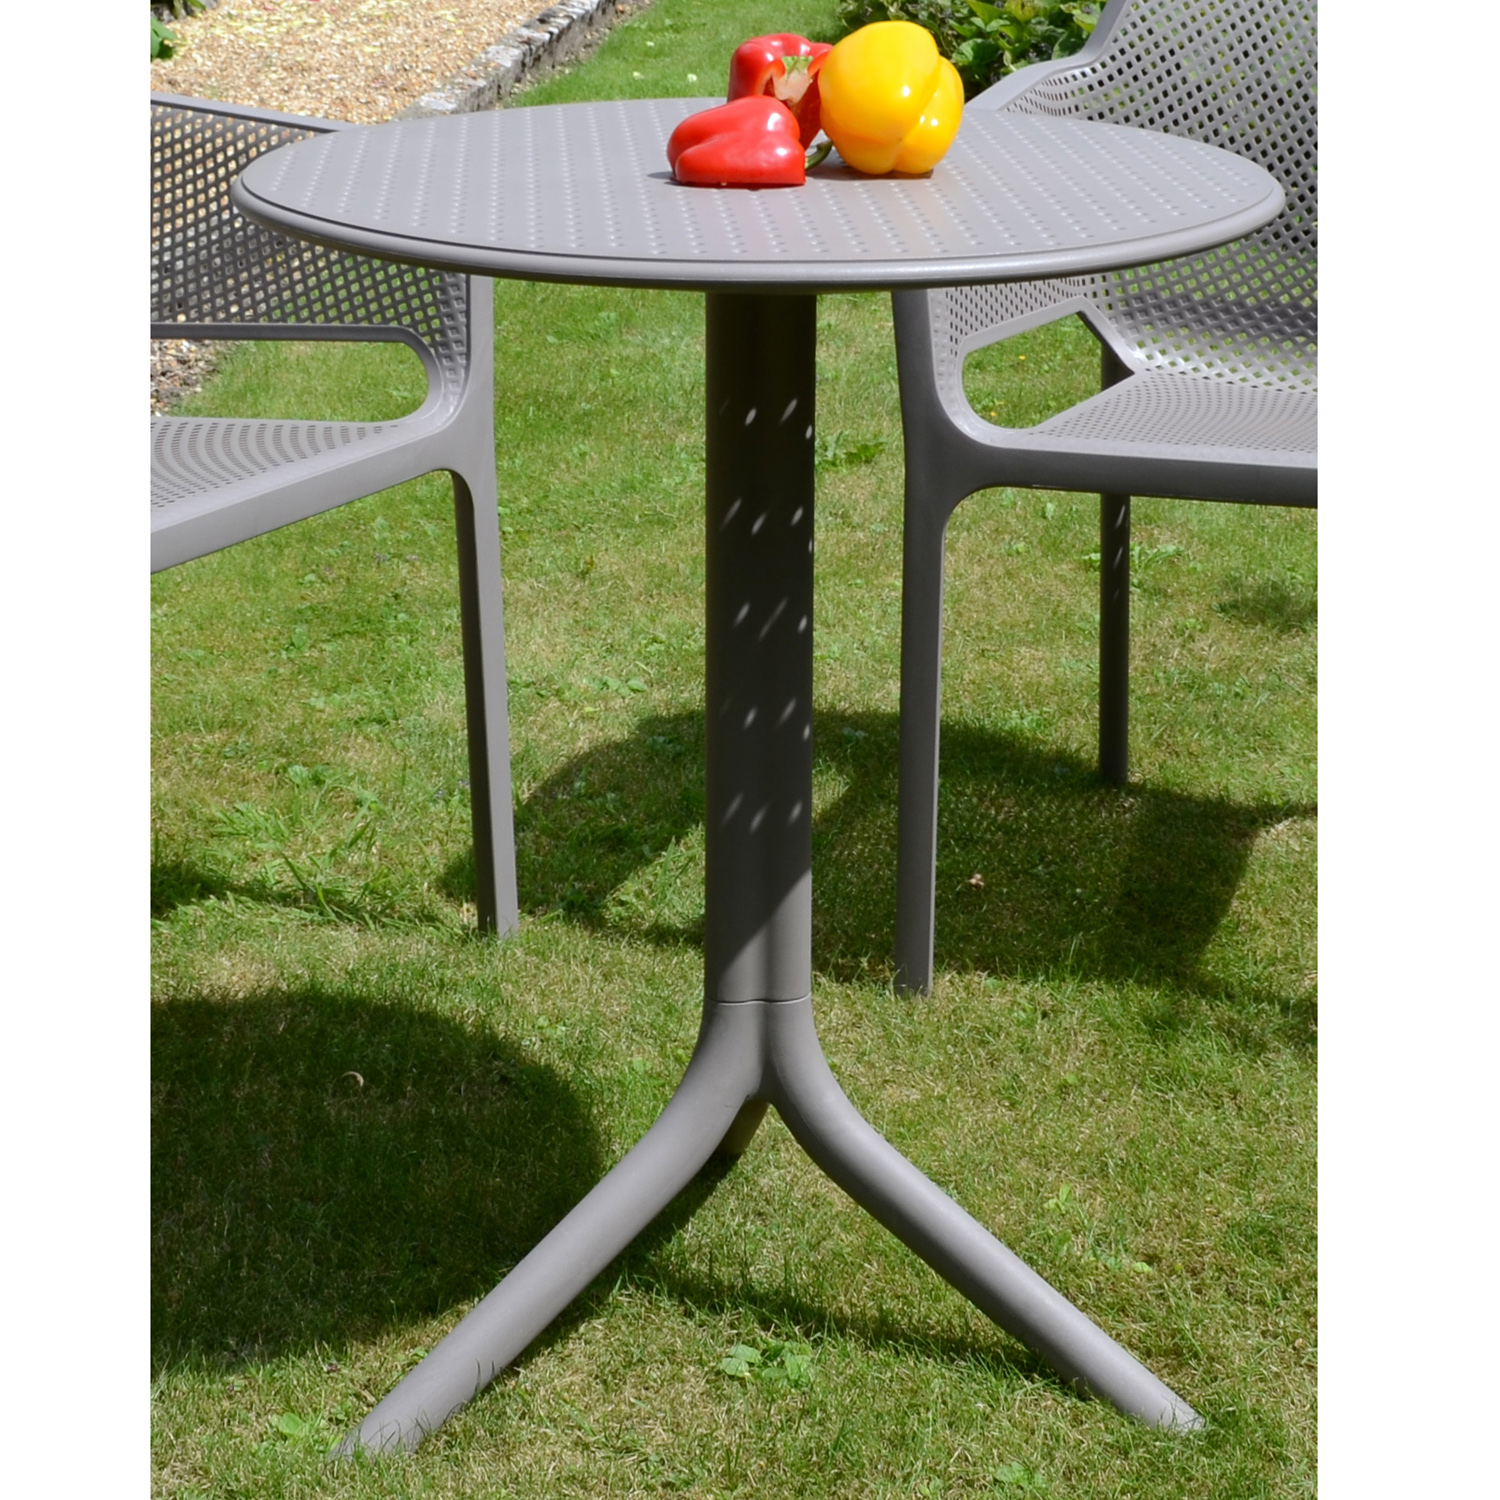 STEP TABLE TURTLE DOVE LS1